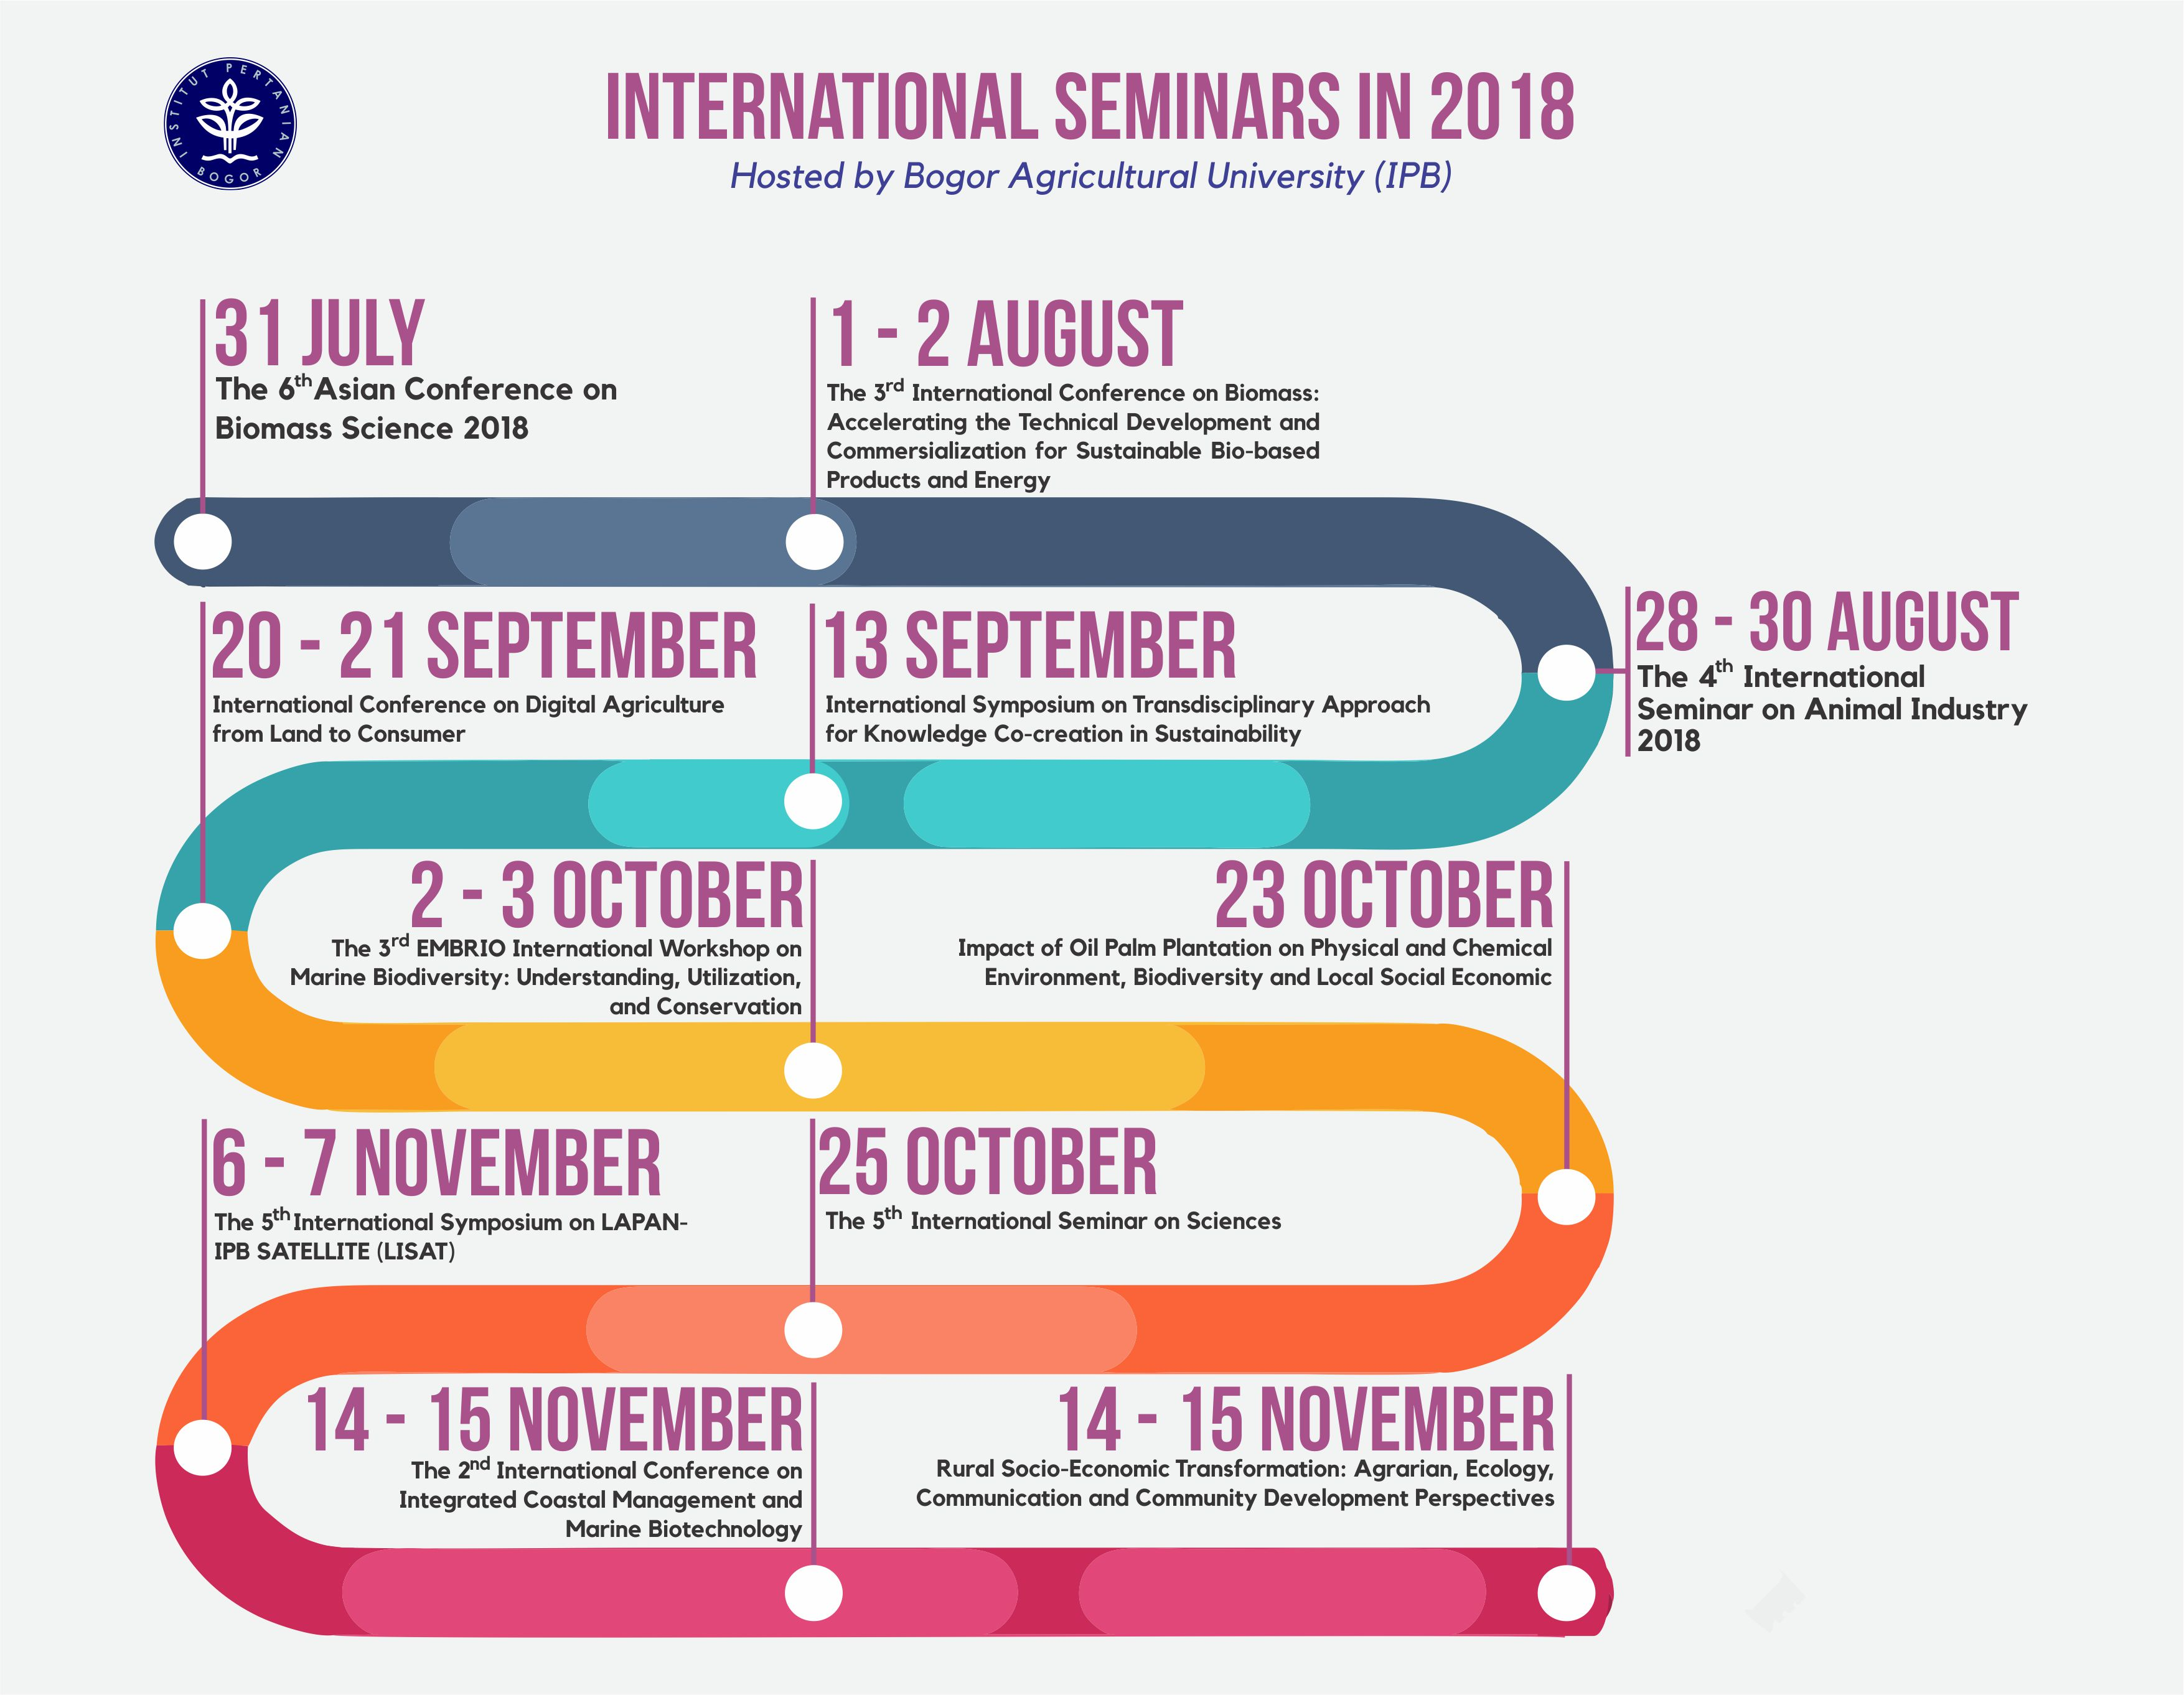 Bogor Agricultural University (IPB) will be Hosting Various